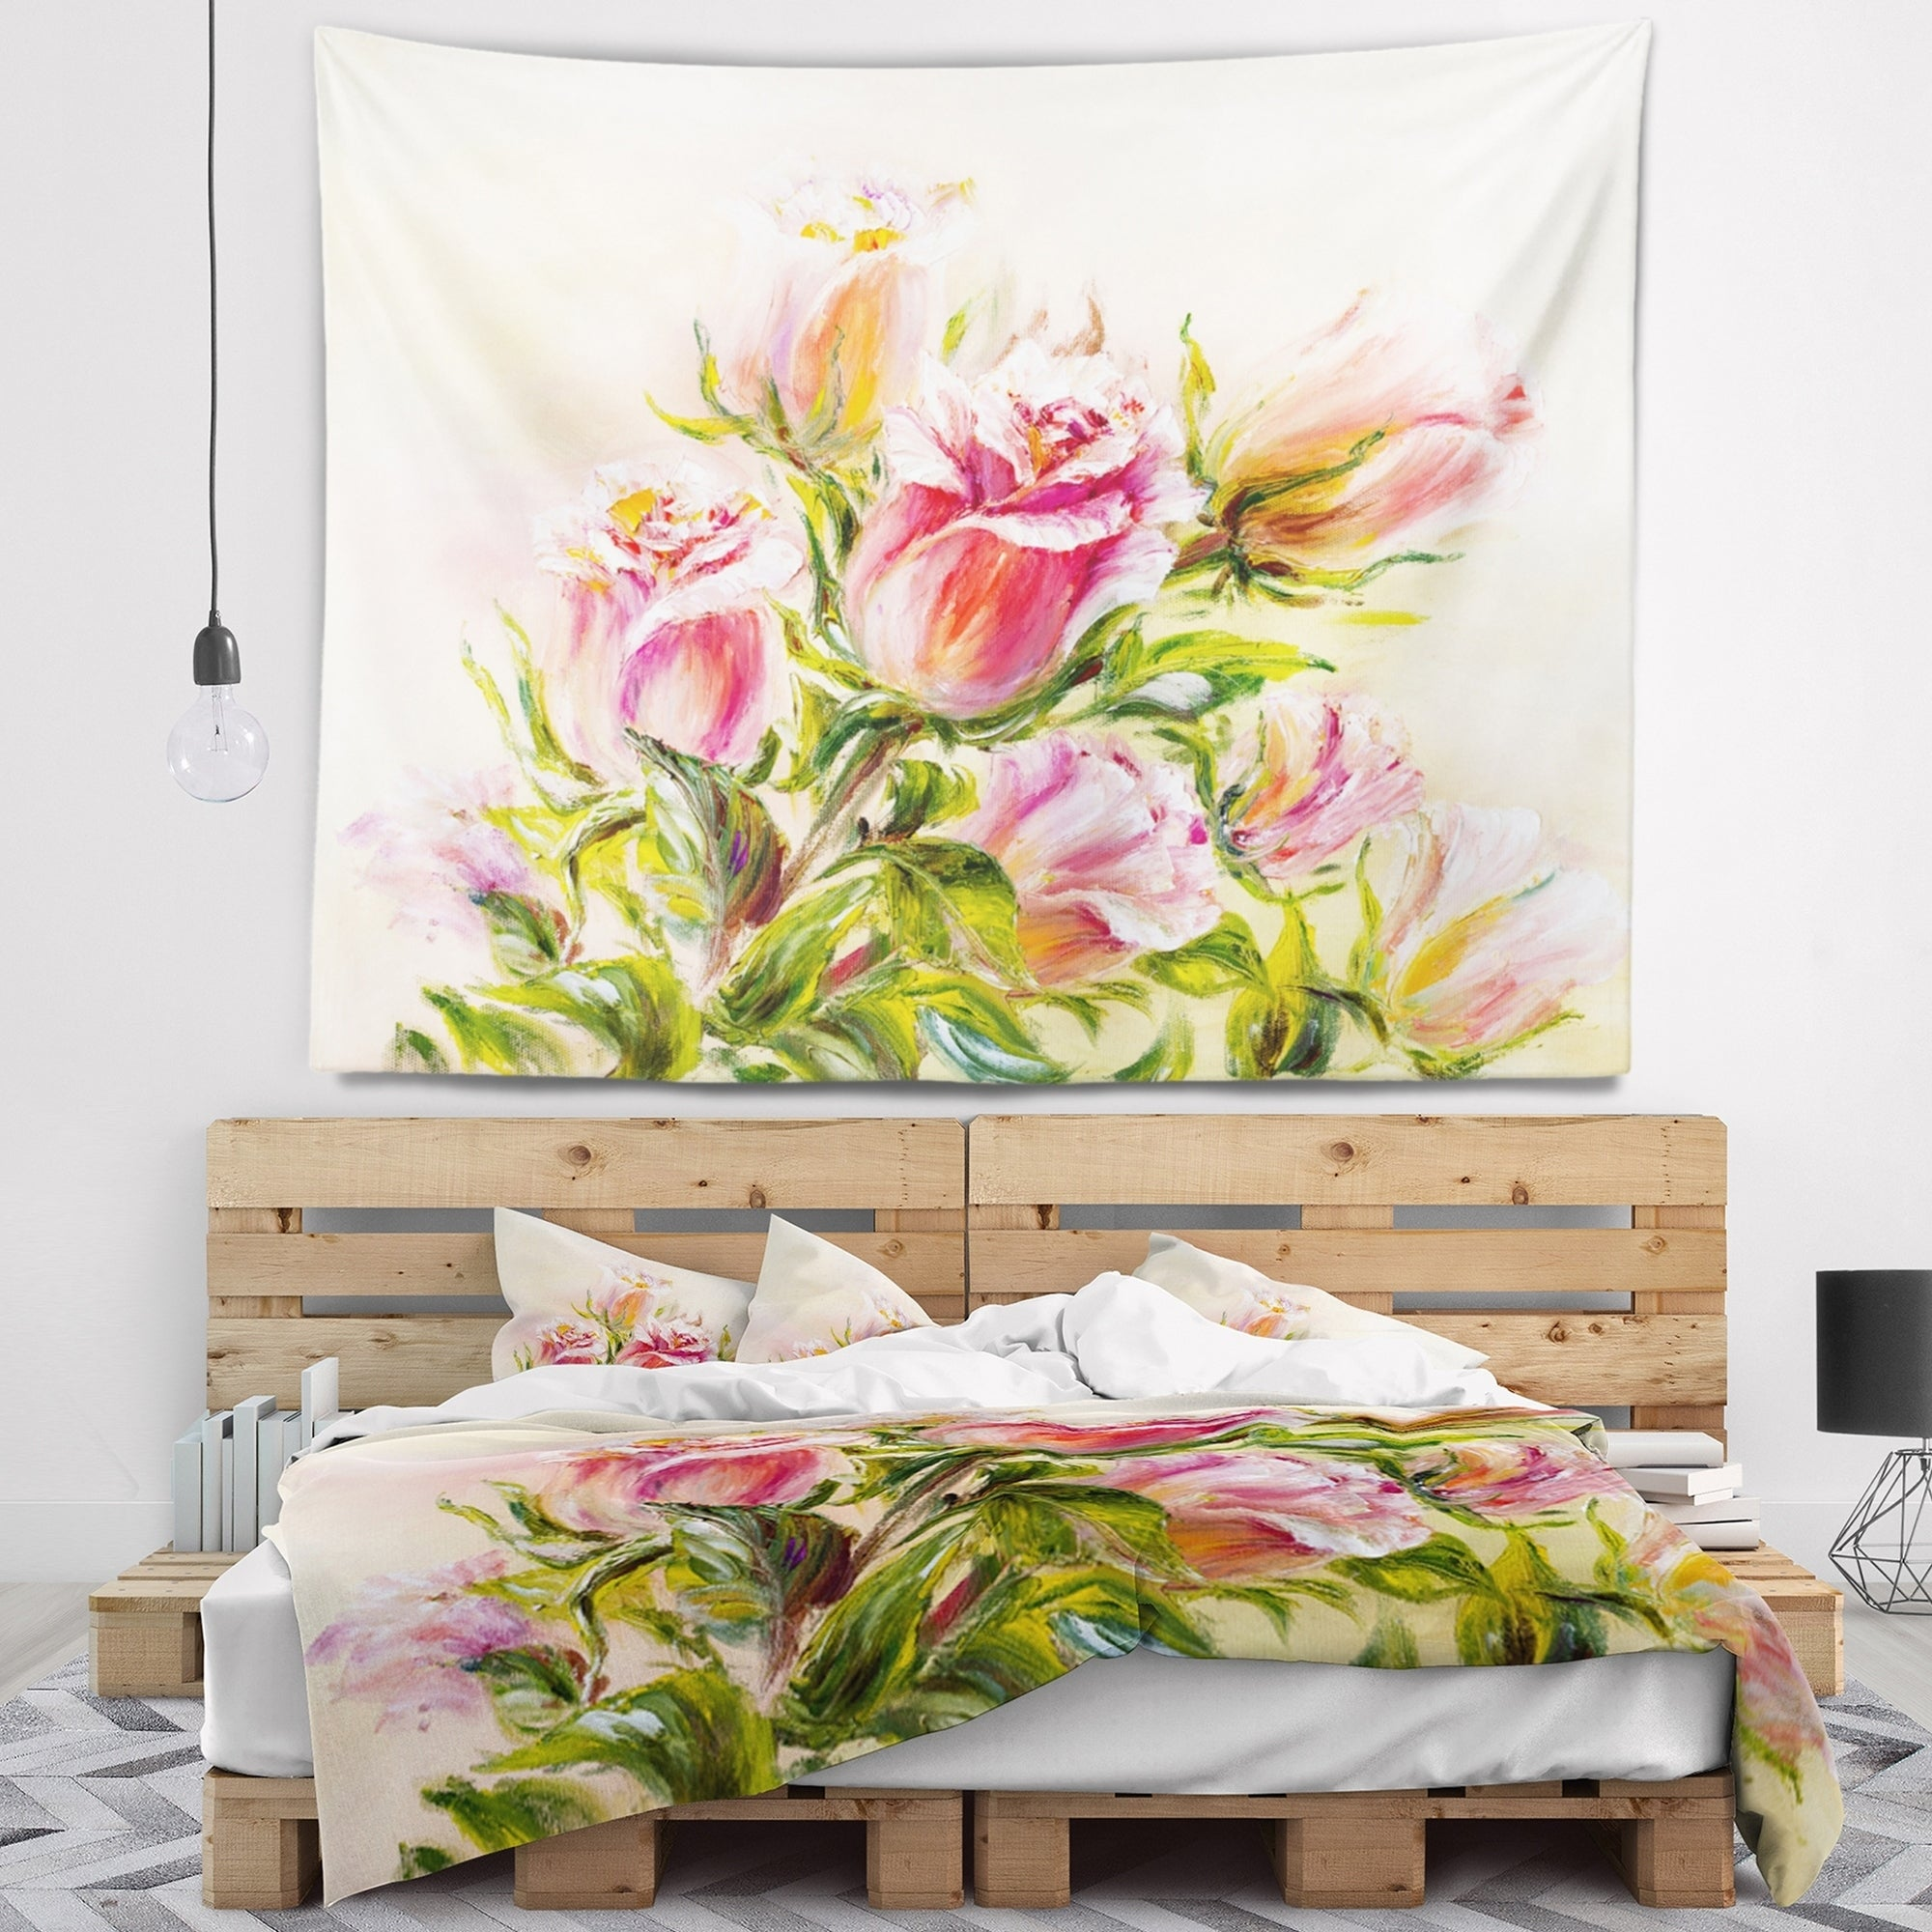 Magnificent Wall Decor Floral Model - The Wall Art Decorations ...